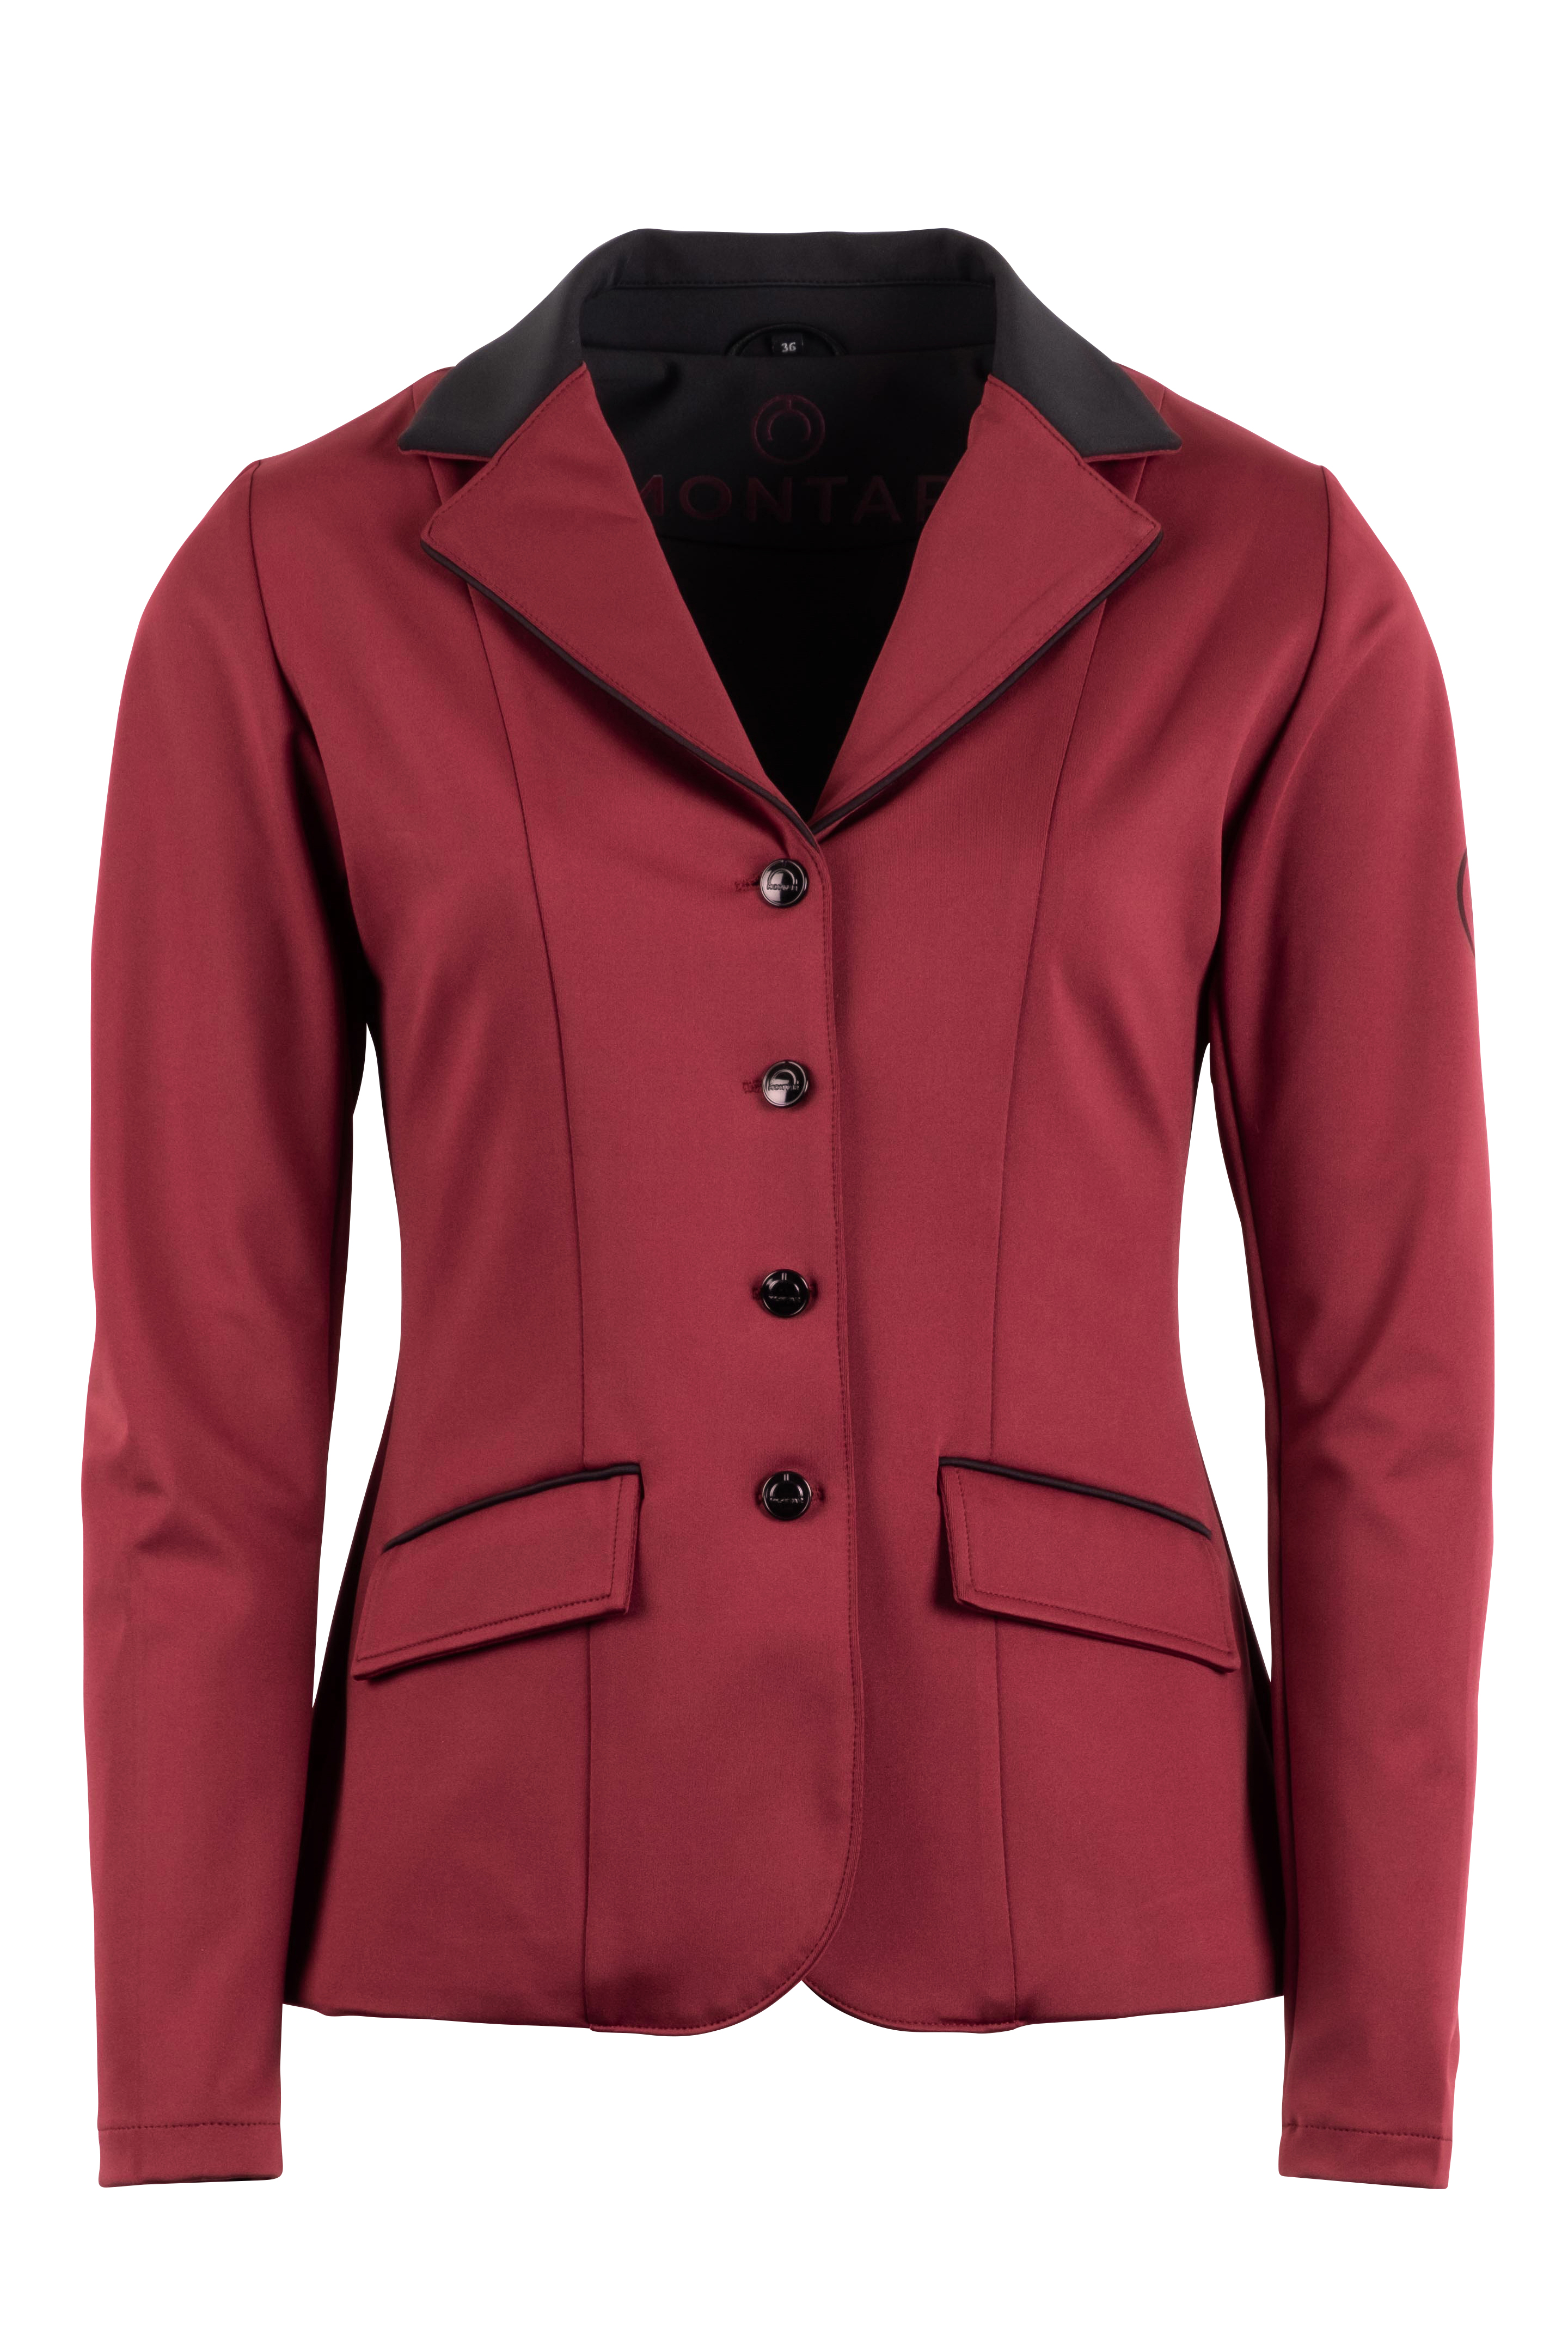 1088 Best Puffer Coat images in 2020 | Puffy jacket, Jackets